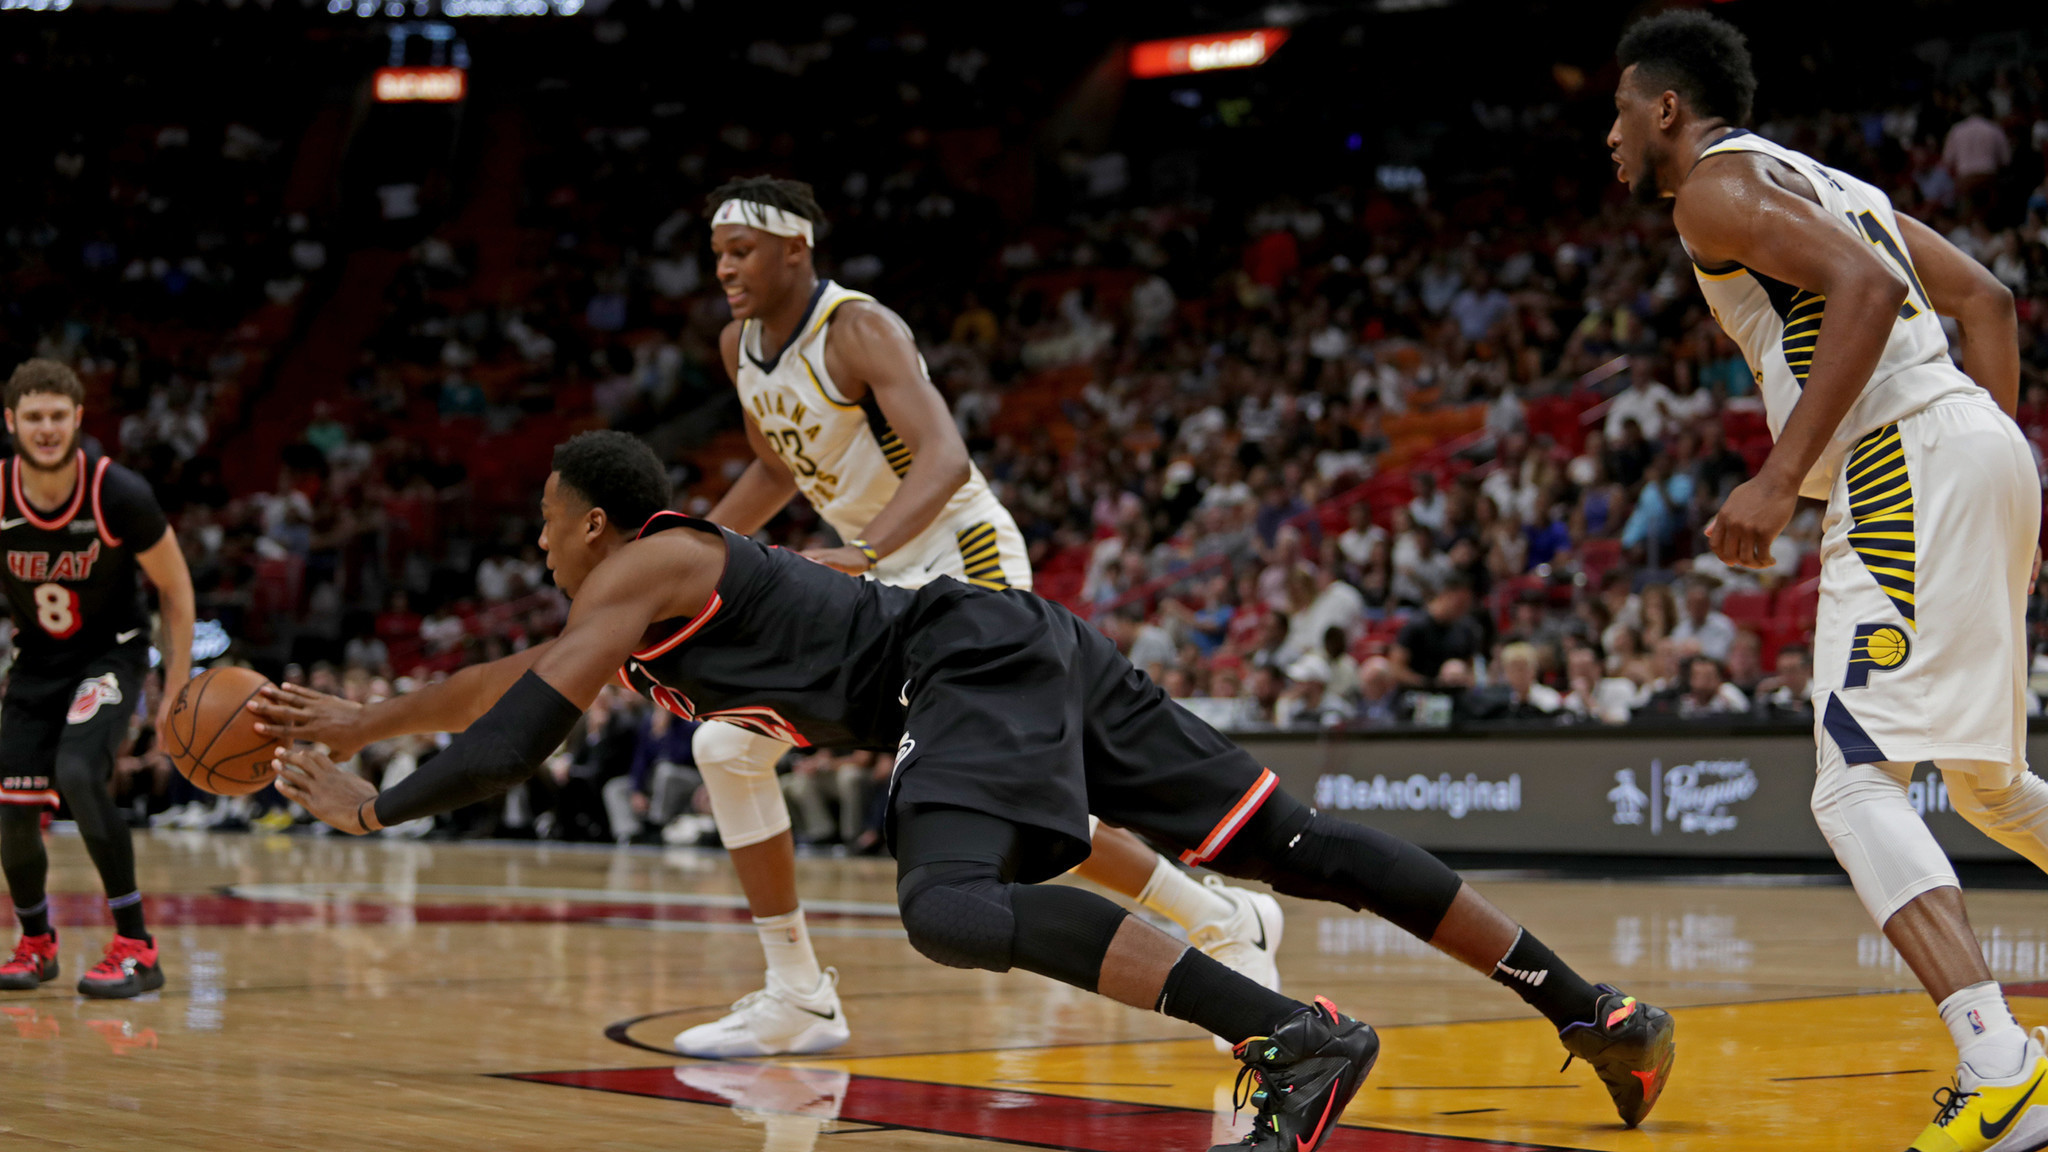 Sfl-photos-pacers-at-heat-20171119